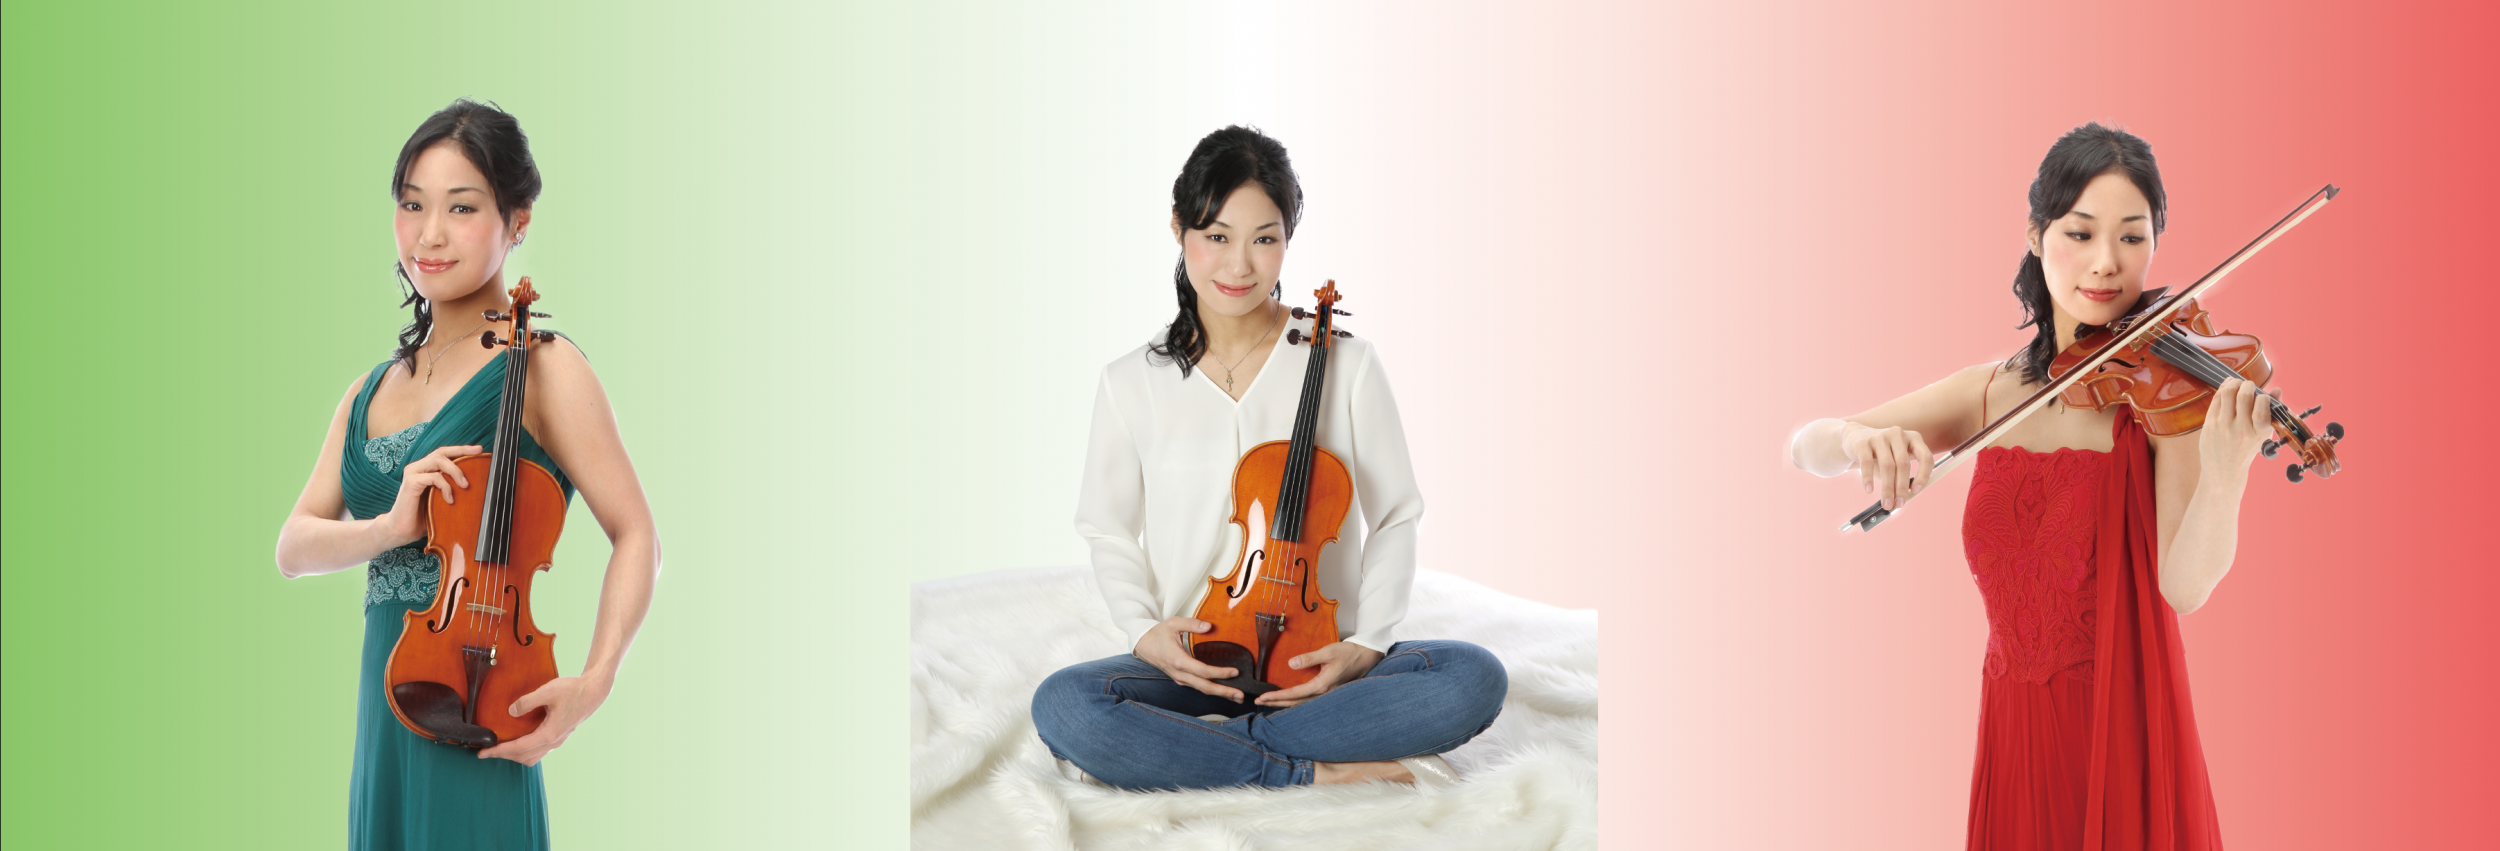 Ami Yokoyama Official Website